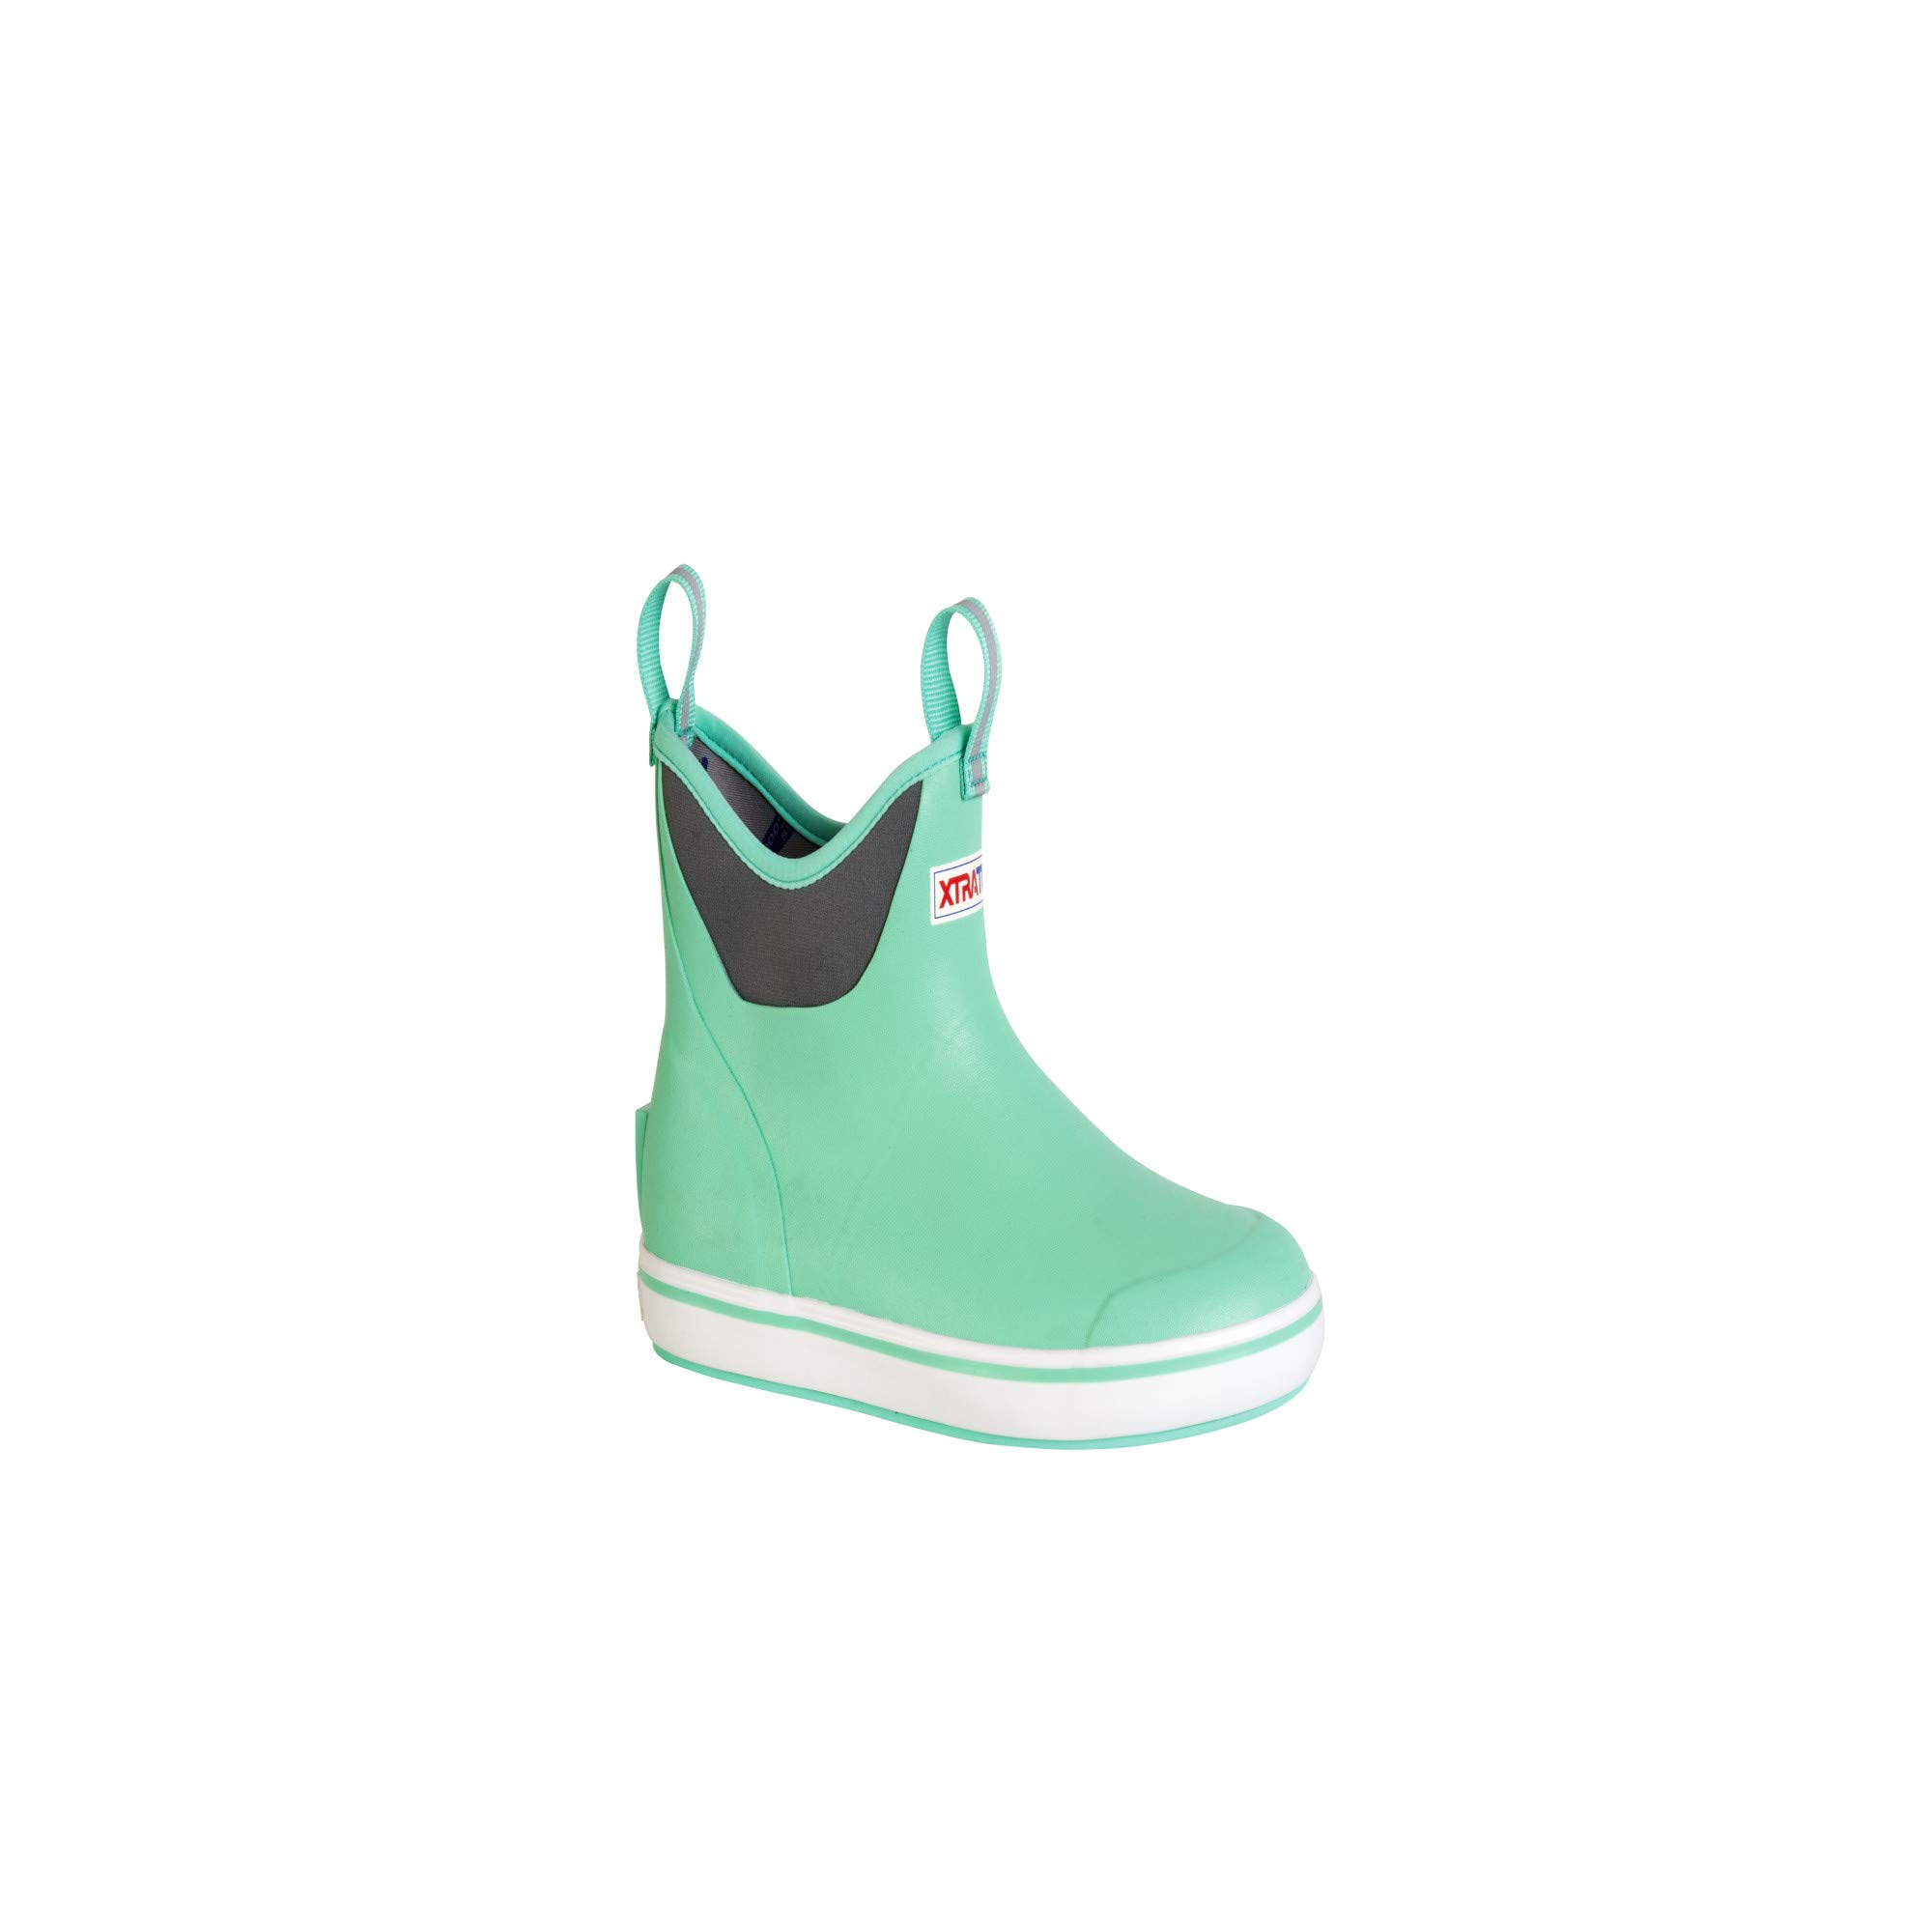 XTRATUF Performance Series 6'' Women's Full Rubber Ankle Deck Boots, Seafoam (XWAB-300), 9 by Xtratuf